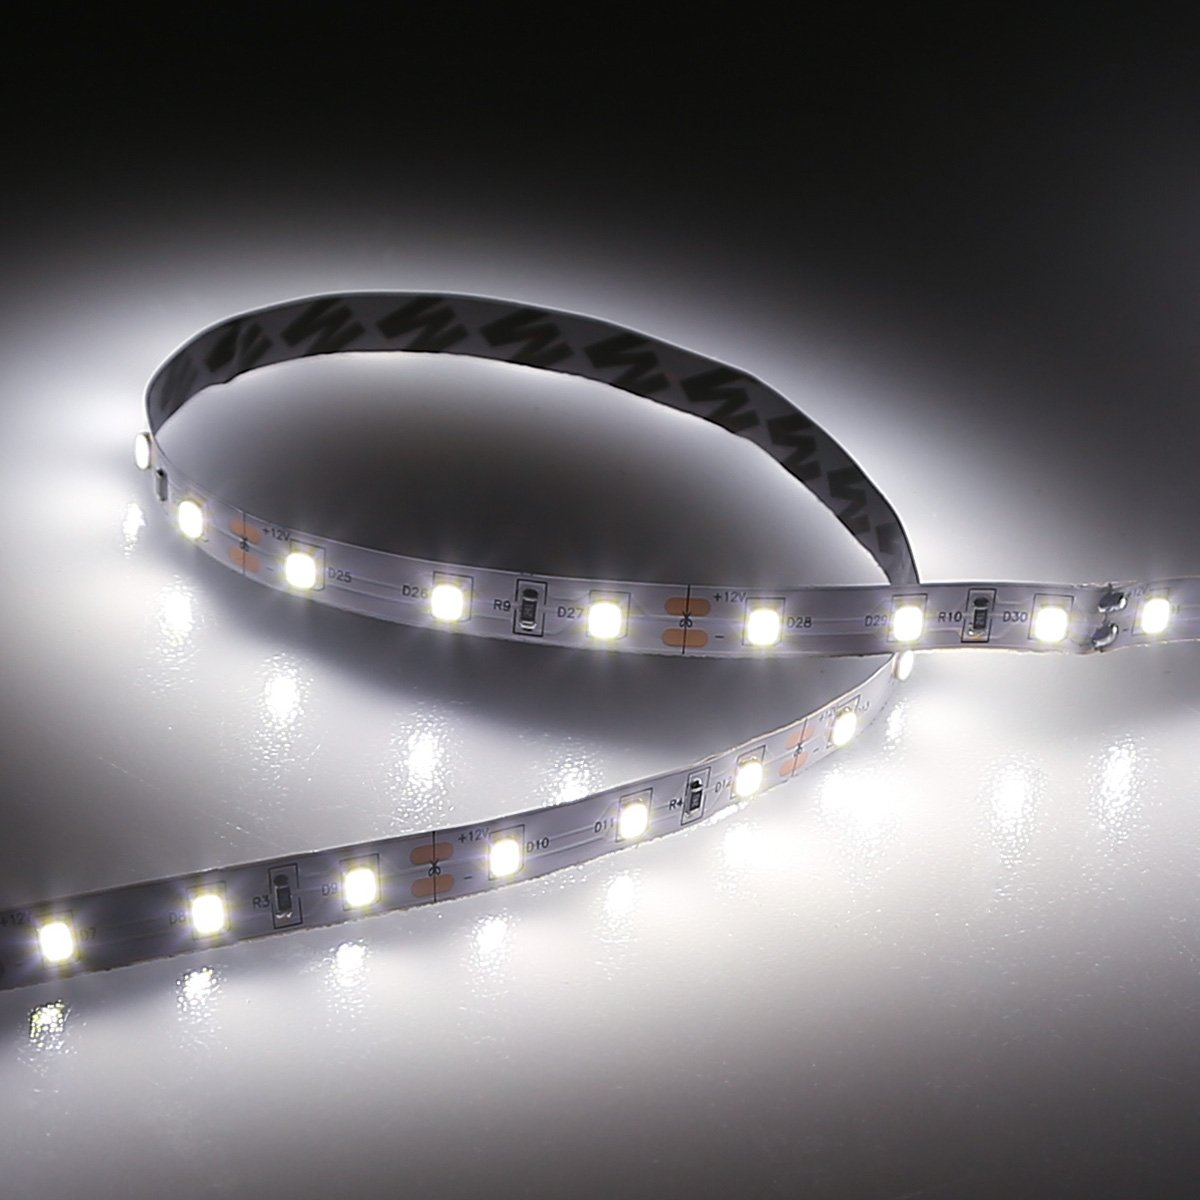 Amazon le 2 pack 164ft flexible led light strip 300 units smd amazon le 2 pack 164ft flexible led light strip 300 units smd 2835 led12v dc 5000k daylight white non waterproof led tape led ribbon aloadofball Image collections